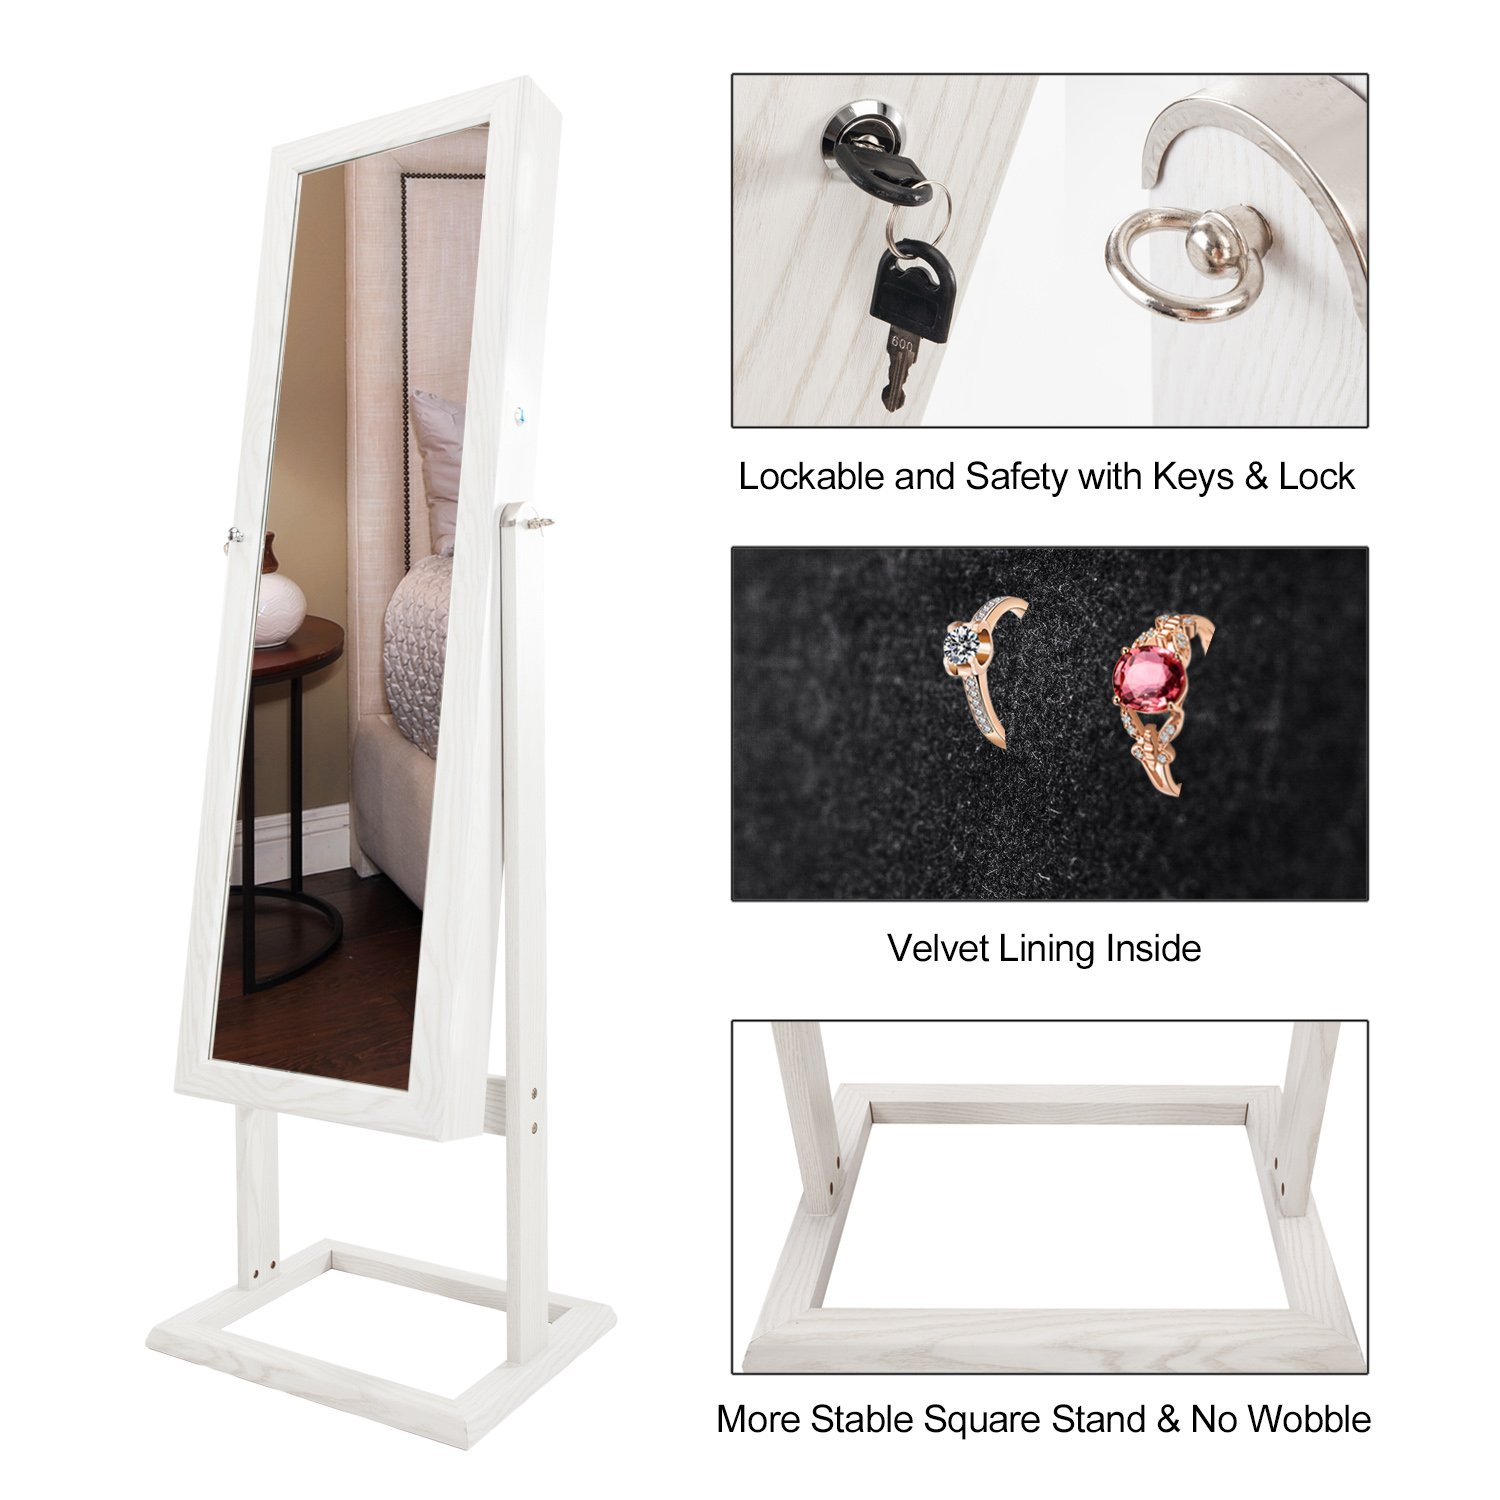 Bonnlo Jewelry Armoire Square Stand with 4 Adjustable Angle Tilting, Well Packed by styrofoam & Stiffer Covering, Lockable Heavy Duty Bedroom Make up Mirror Cabinet Organizer Closet by Bonnlo (Image #3)